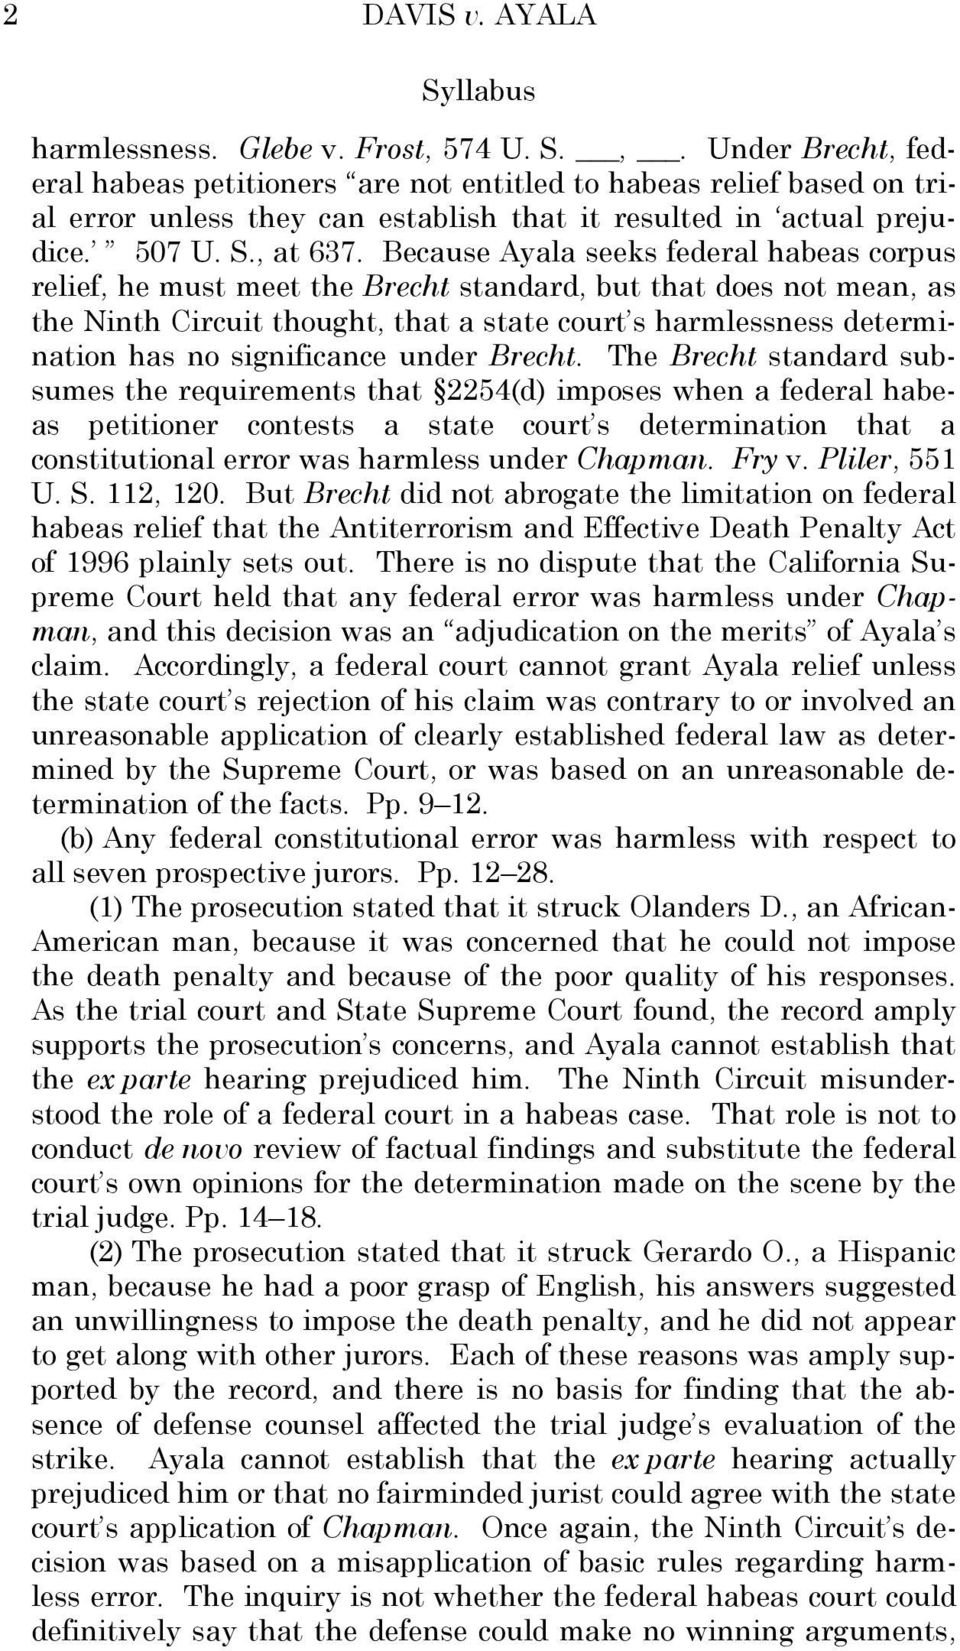 Because Ayala seeks federal habeas corpus relief, he must meet the Brecht standard, but that does not mean, as the Ninth Circuit thought, that a state court s harmlessness determination has no